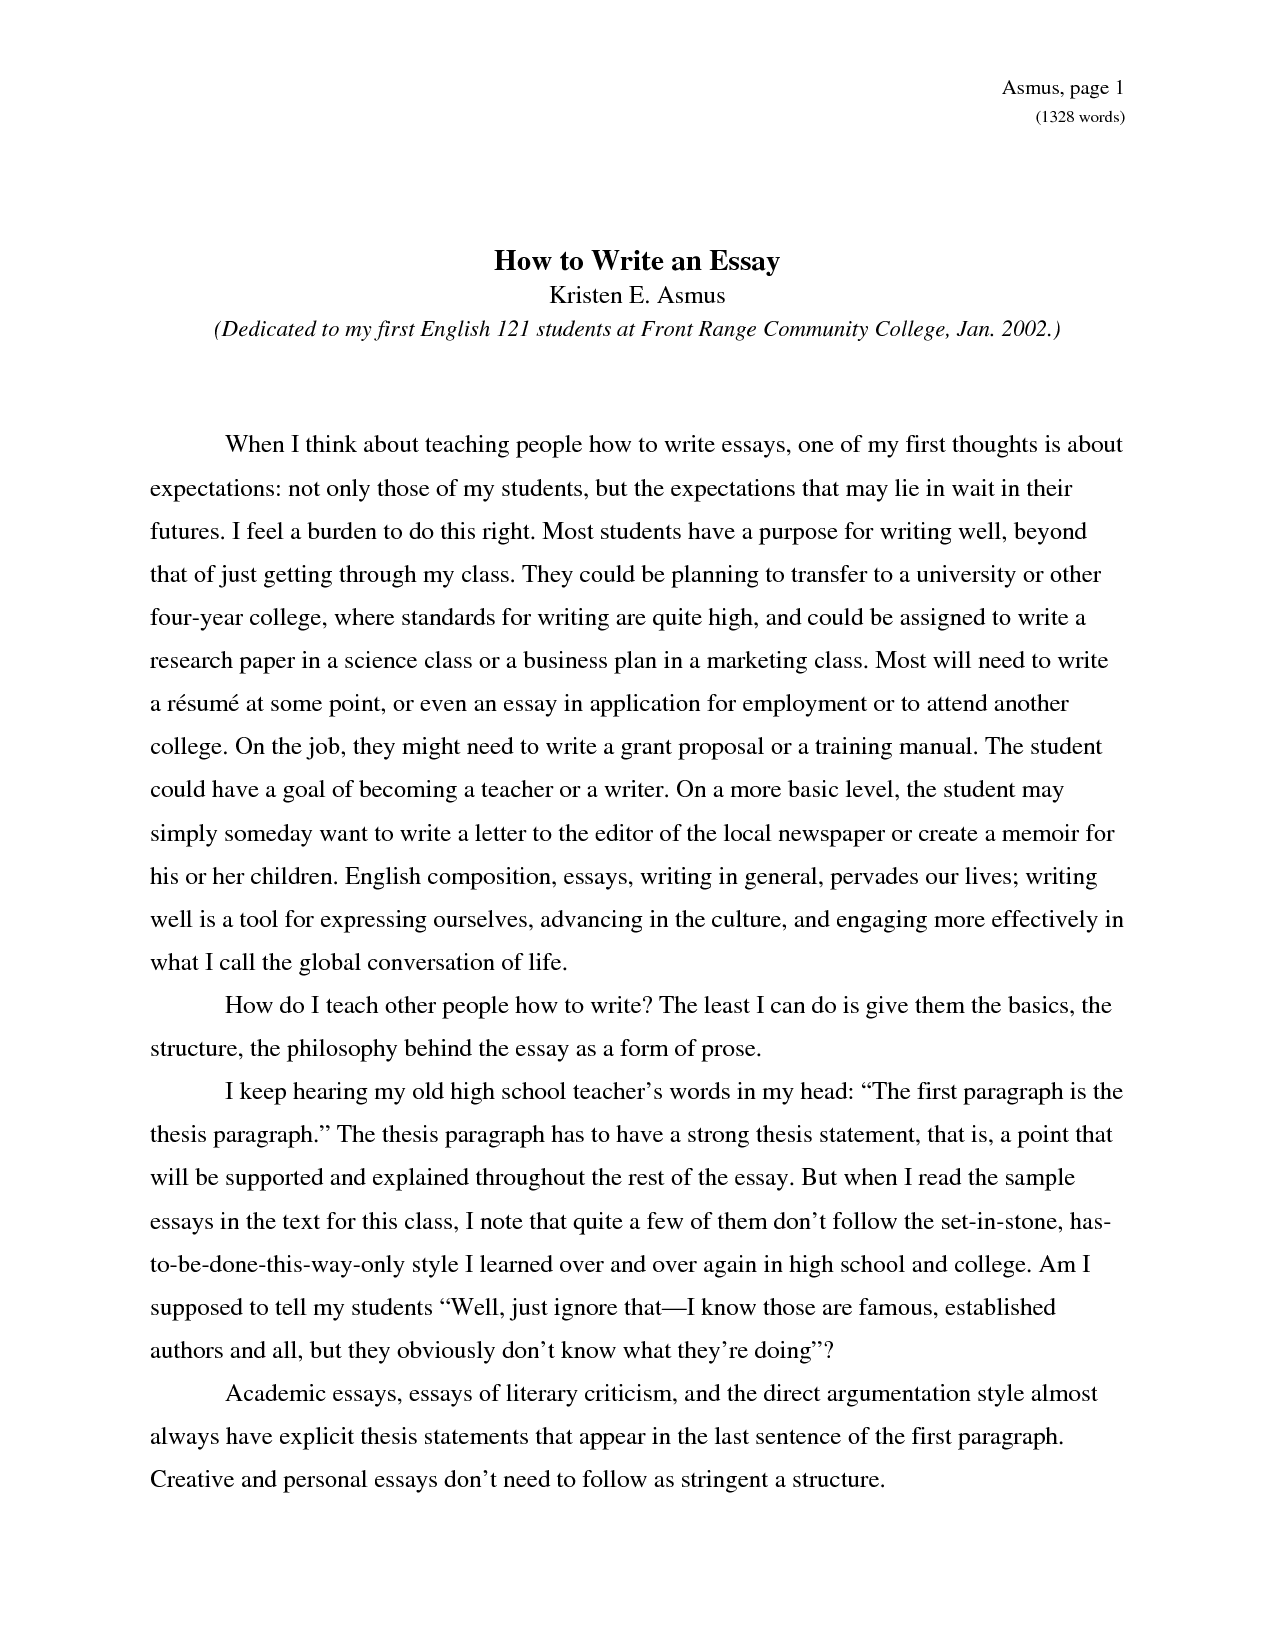 this essay The test of a good introduction is whether someone can guess what the essay question is just from reading it if not, the introduction has failed therefore, a good introduction briefly sets out what the topic is and what your position is regarding the question be specific about your topic, but don't go into too much detail—no.